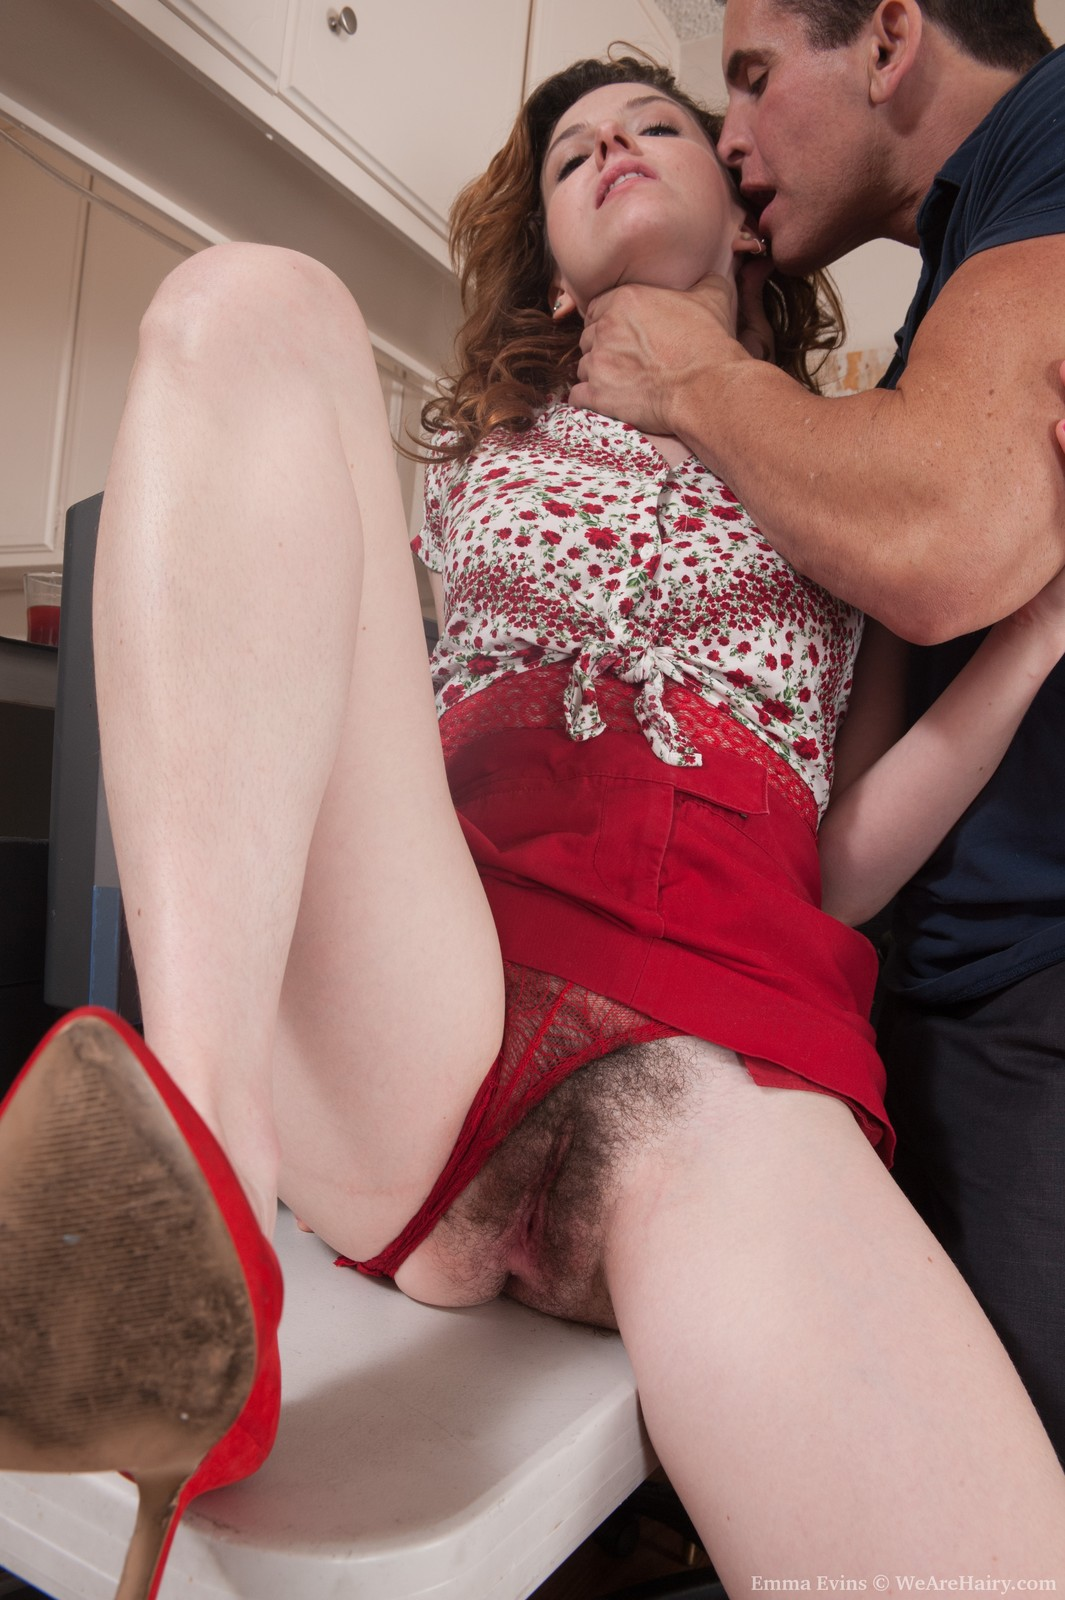 Beat good women hairy upskirt russian style